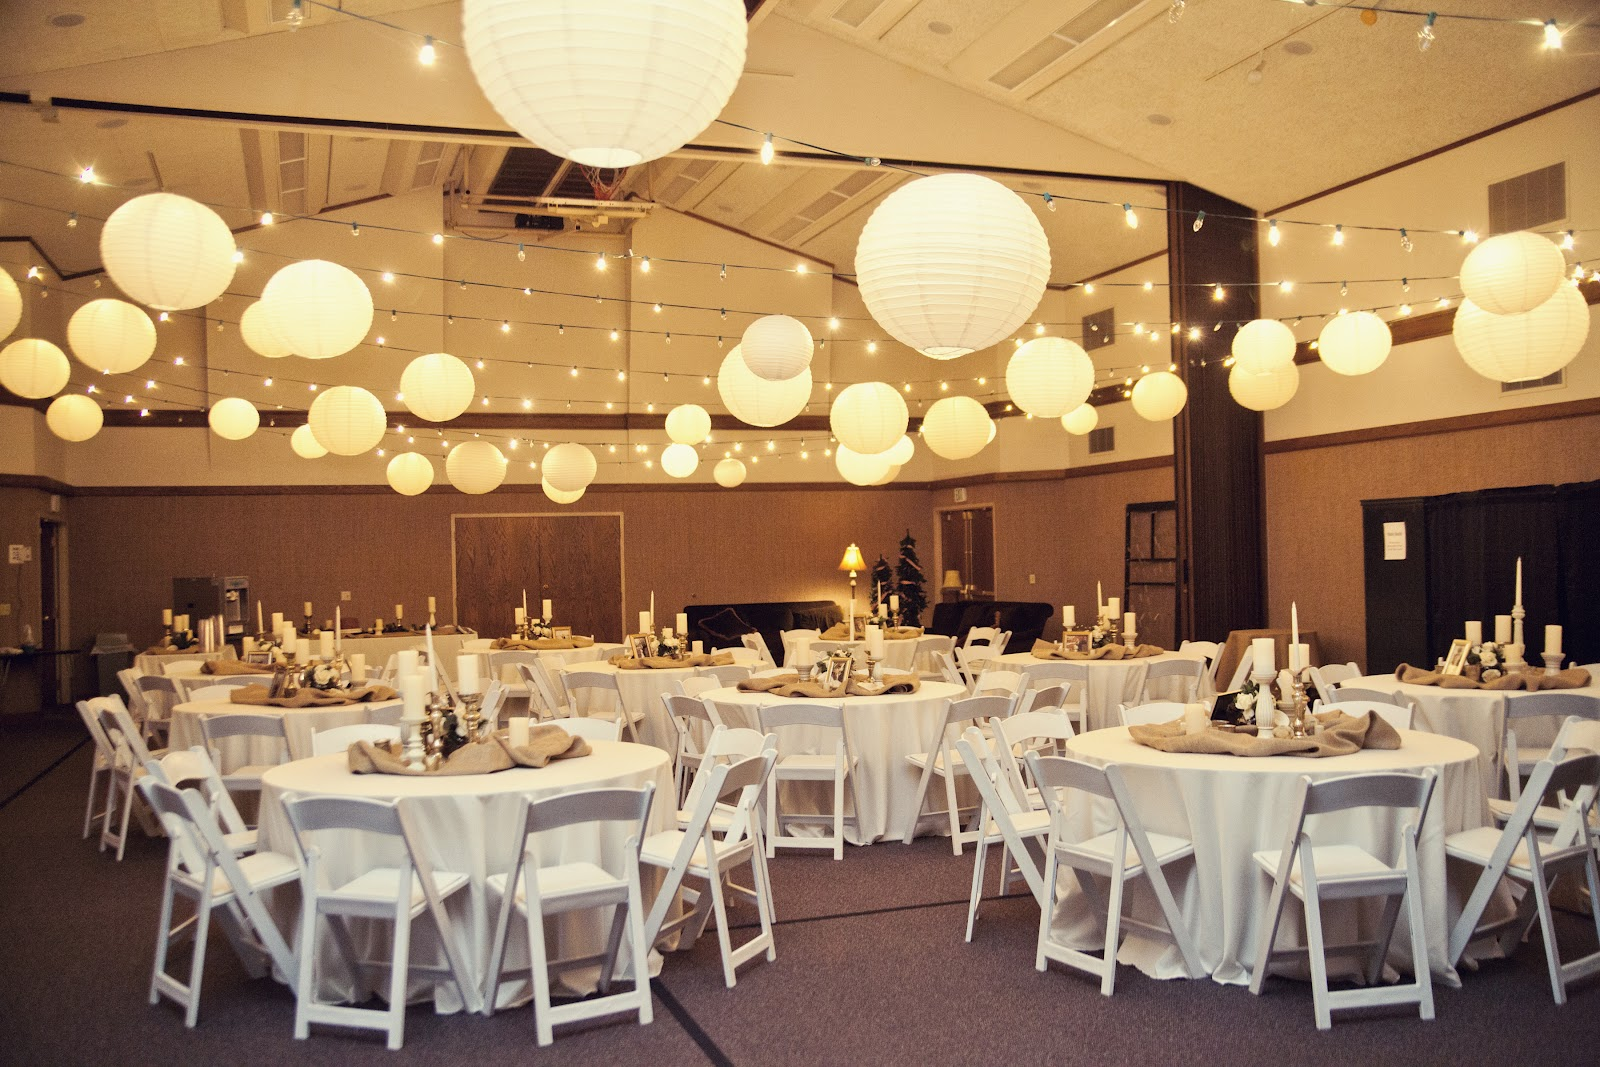 Beehive art salon wedding for Hall decoration design